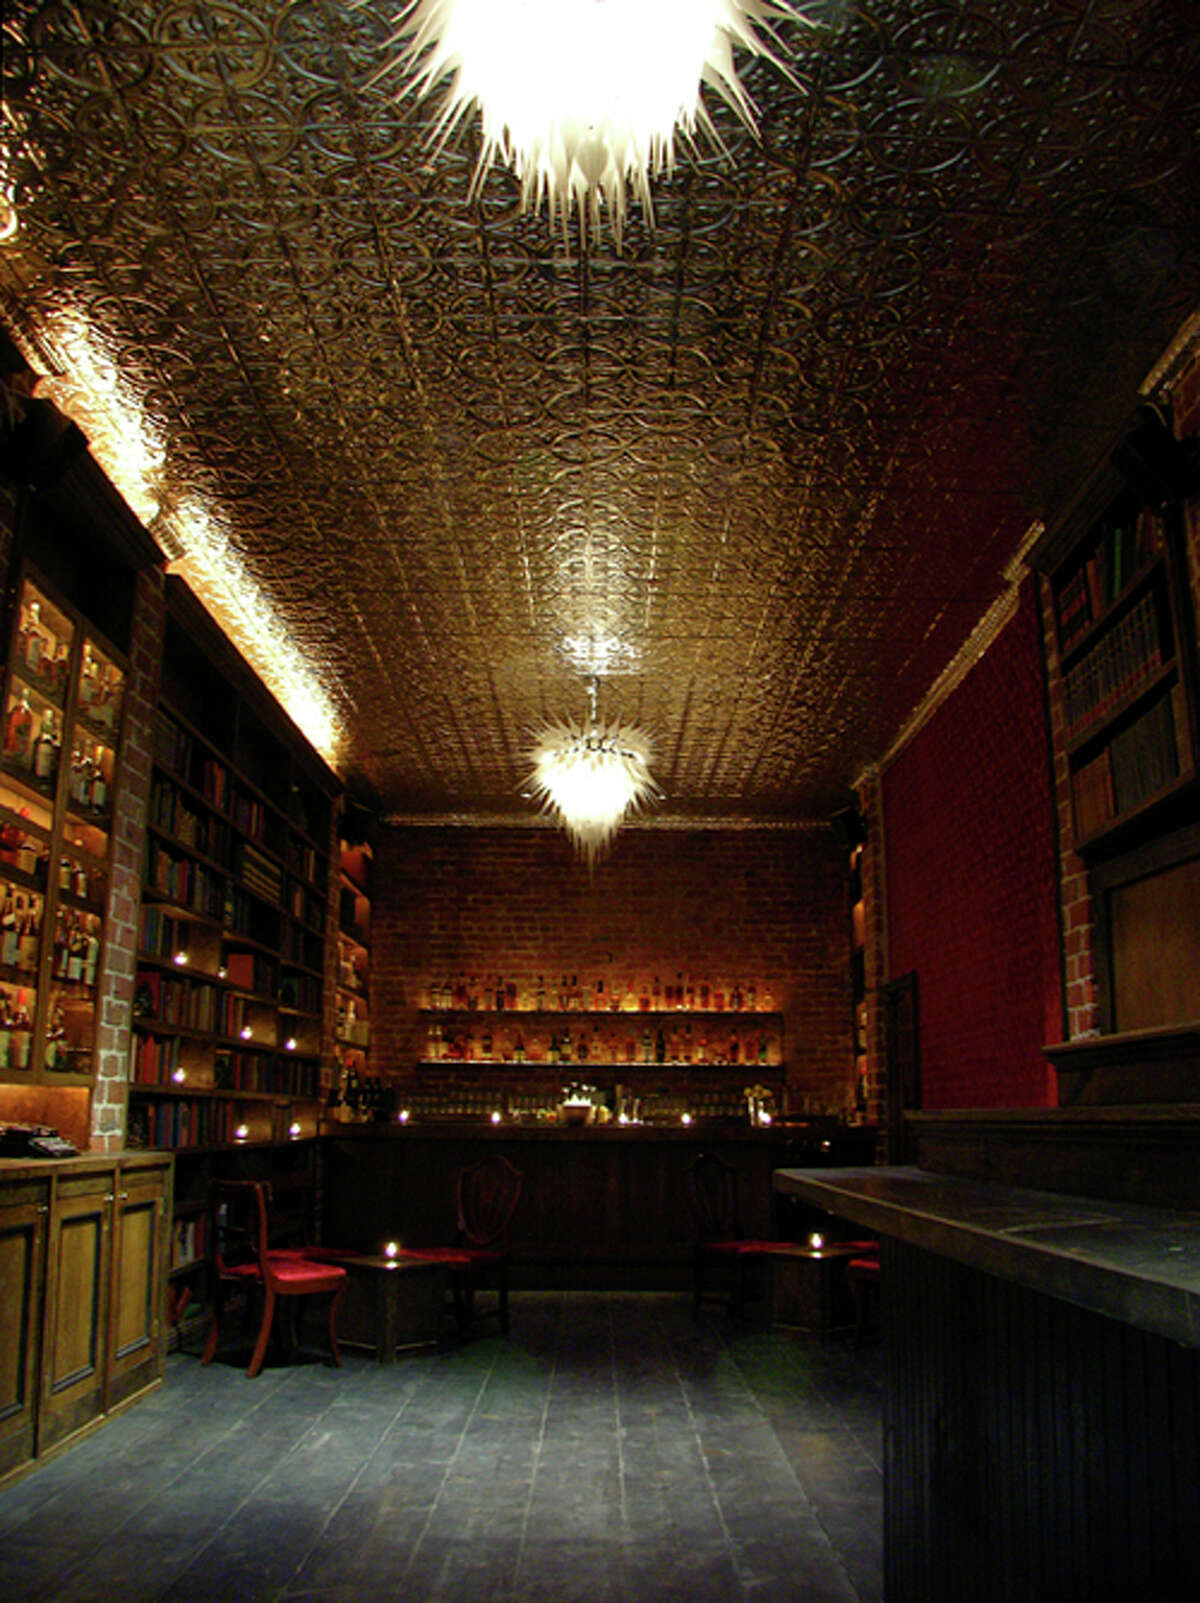 Bourbon & Branch in San Francisco While the names have changed, the conventions of 501 Jones St. haven't; a bar has been operating here since 1867. During Prohibition it was under the guise of JJ Russell Cigar Shop and boasted all the secret entrances and exit tunnels one would hope for in an original speakeasy. The aura of secrecy from that era remains. You'll have to make a reservation to get a password to enter and be escorted through some of those same secret doors. The '20s-inspired cocktail menu changes regularly, since many of the ingredients are sourced locally, with offerings like gimlets, fizzes, and, of course, lots of gin. Per the house rules, there are no cell phones or photography allowed.